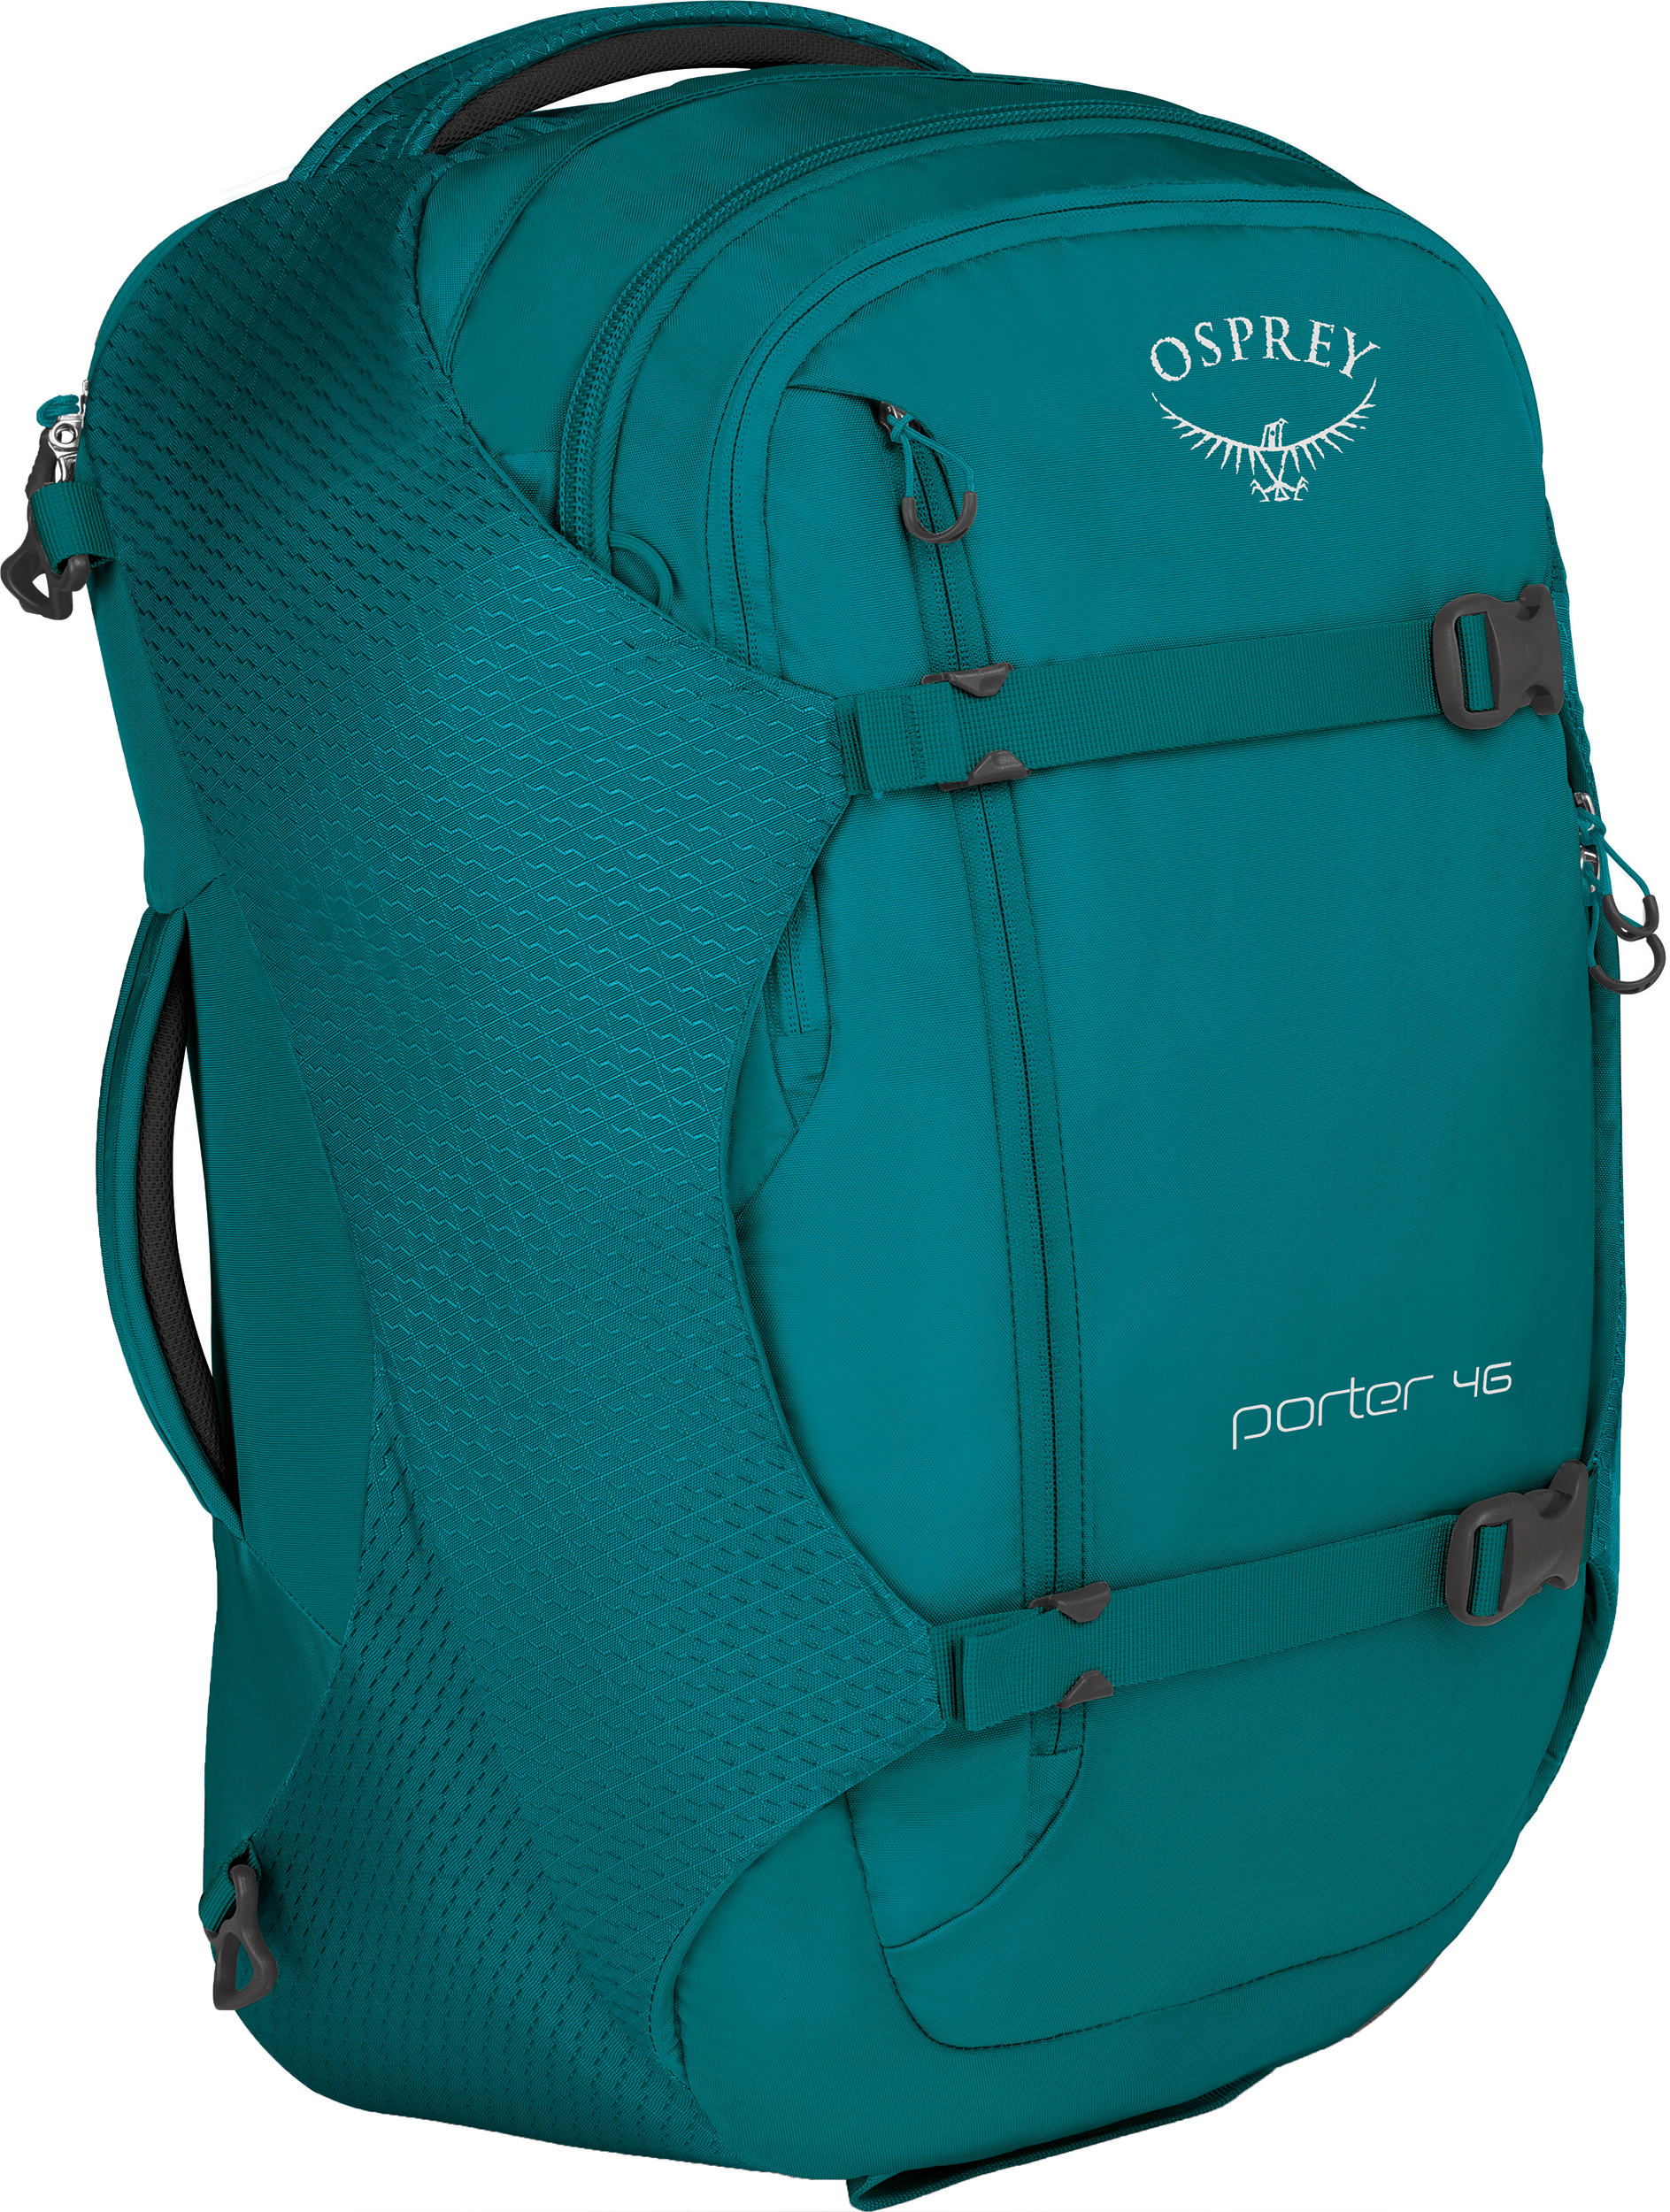 Osprey Packs and bags ef6ed3a4a8